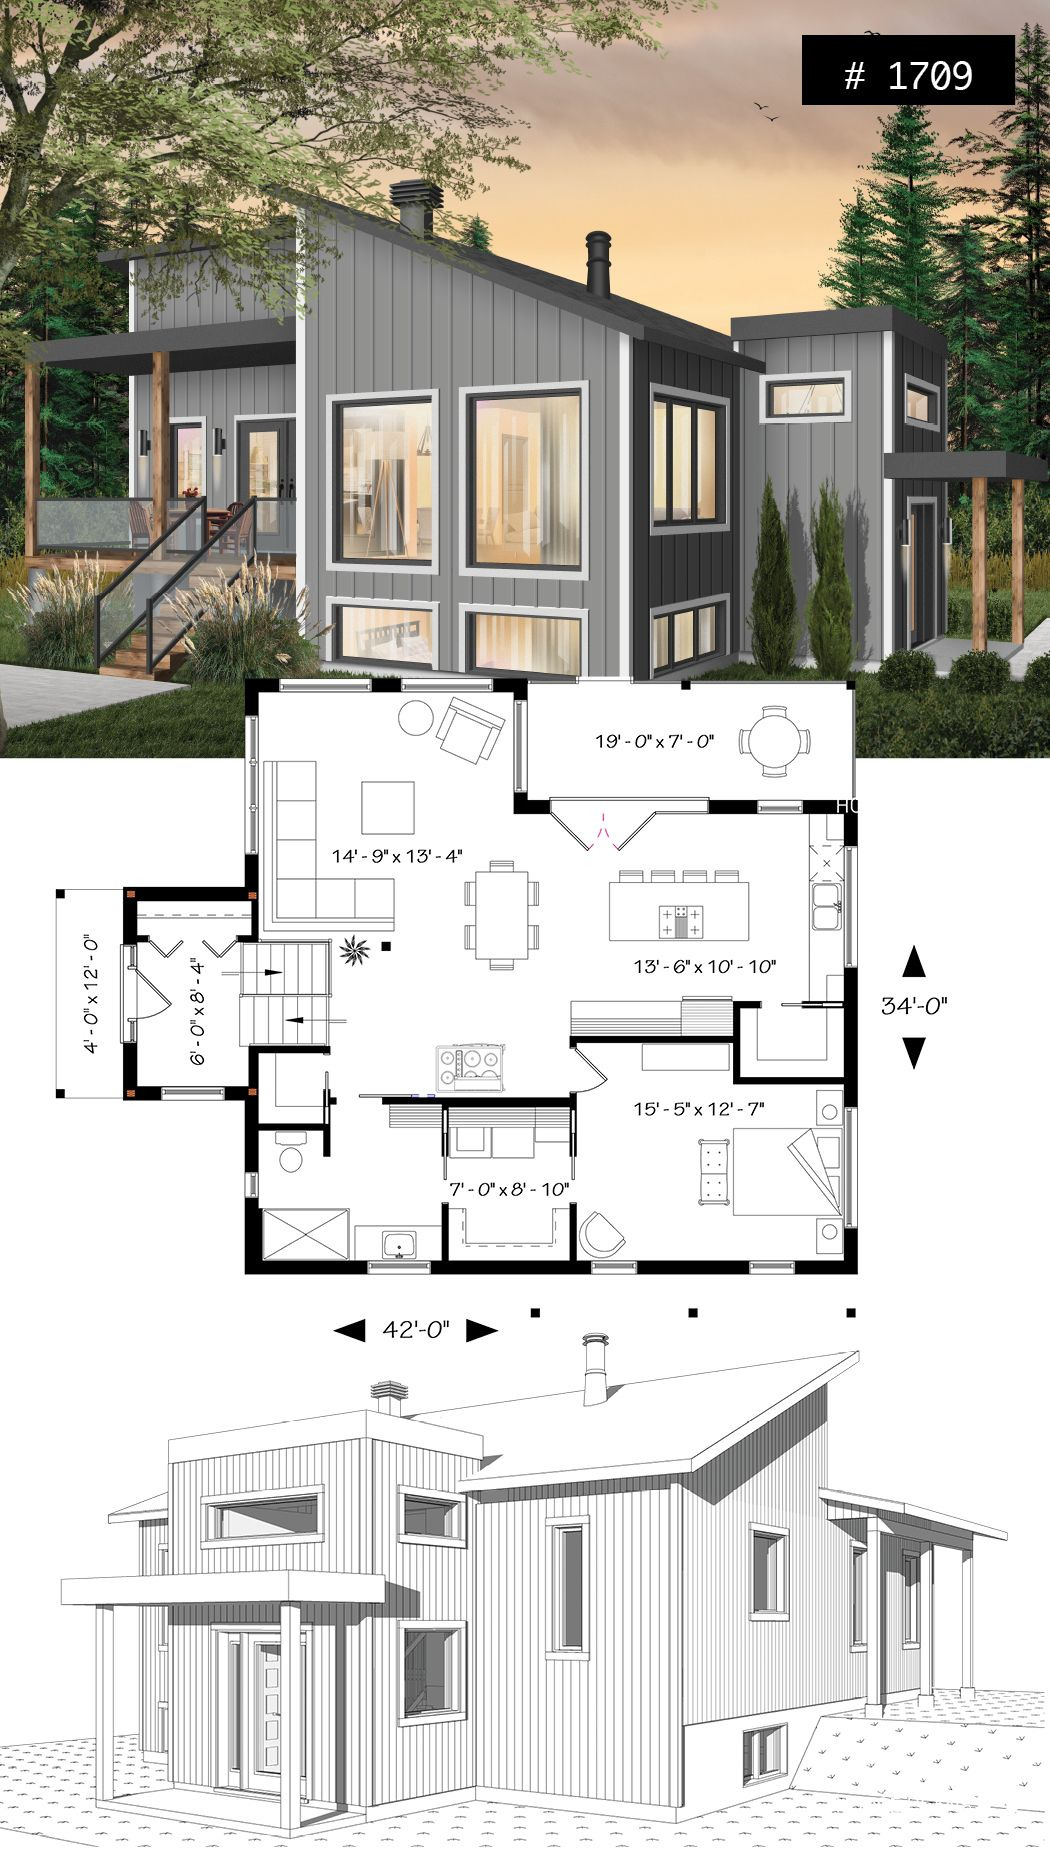 Contemporary Open Floor Plan House Designs Best Of House Plan Billy No 1709